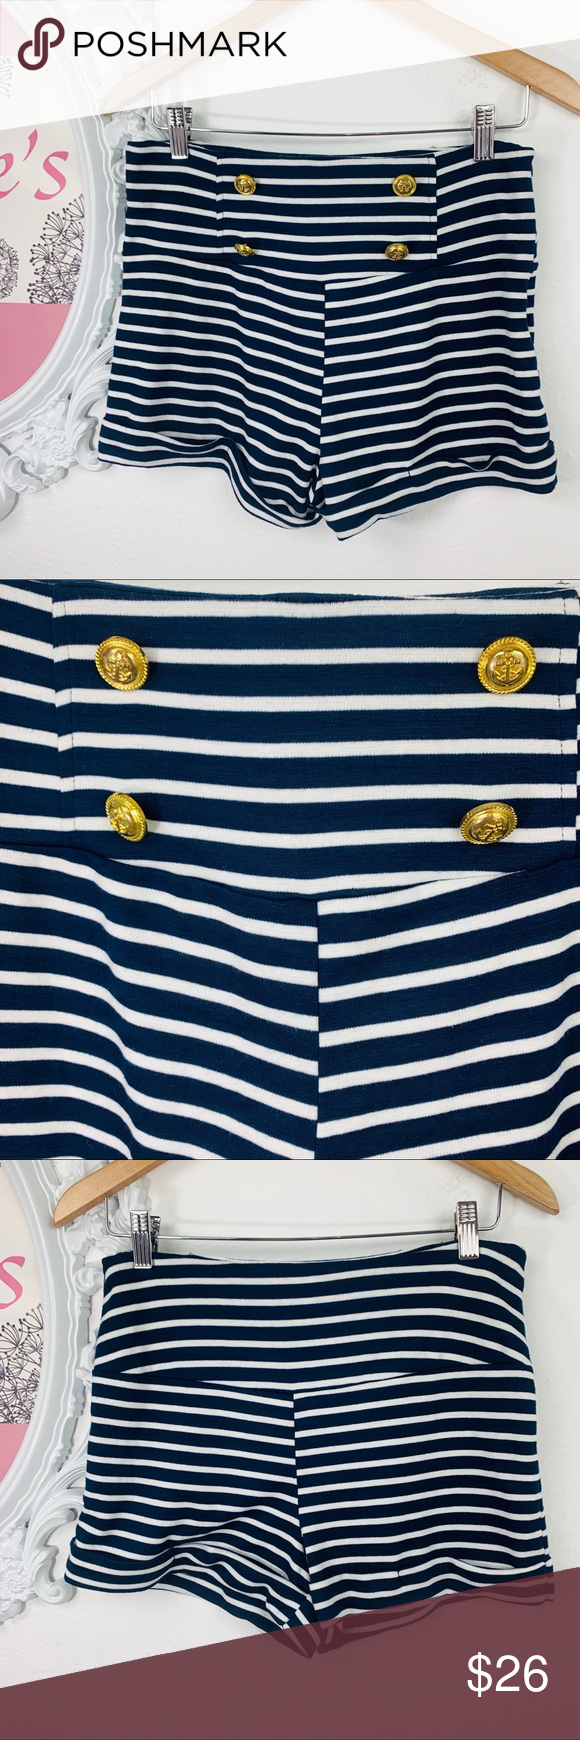 DNA Couture/ High-Waist Blue White Striped Short Dna Couture High -Waist Cuffed blue with white stripes and gold buttons with Anchors .97% Cotton 3% Spandex gives it a little extra stretch  Size 0 Waist 15in Length 13in. Rise 14in. Inseam 2in.  #0502 DNA couture Shorts